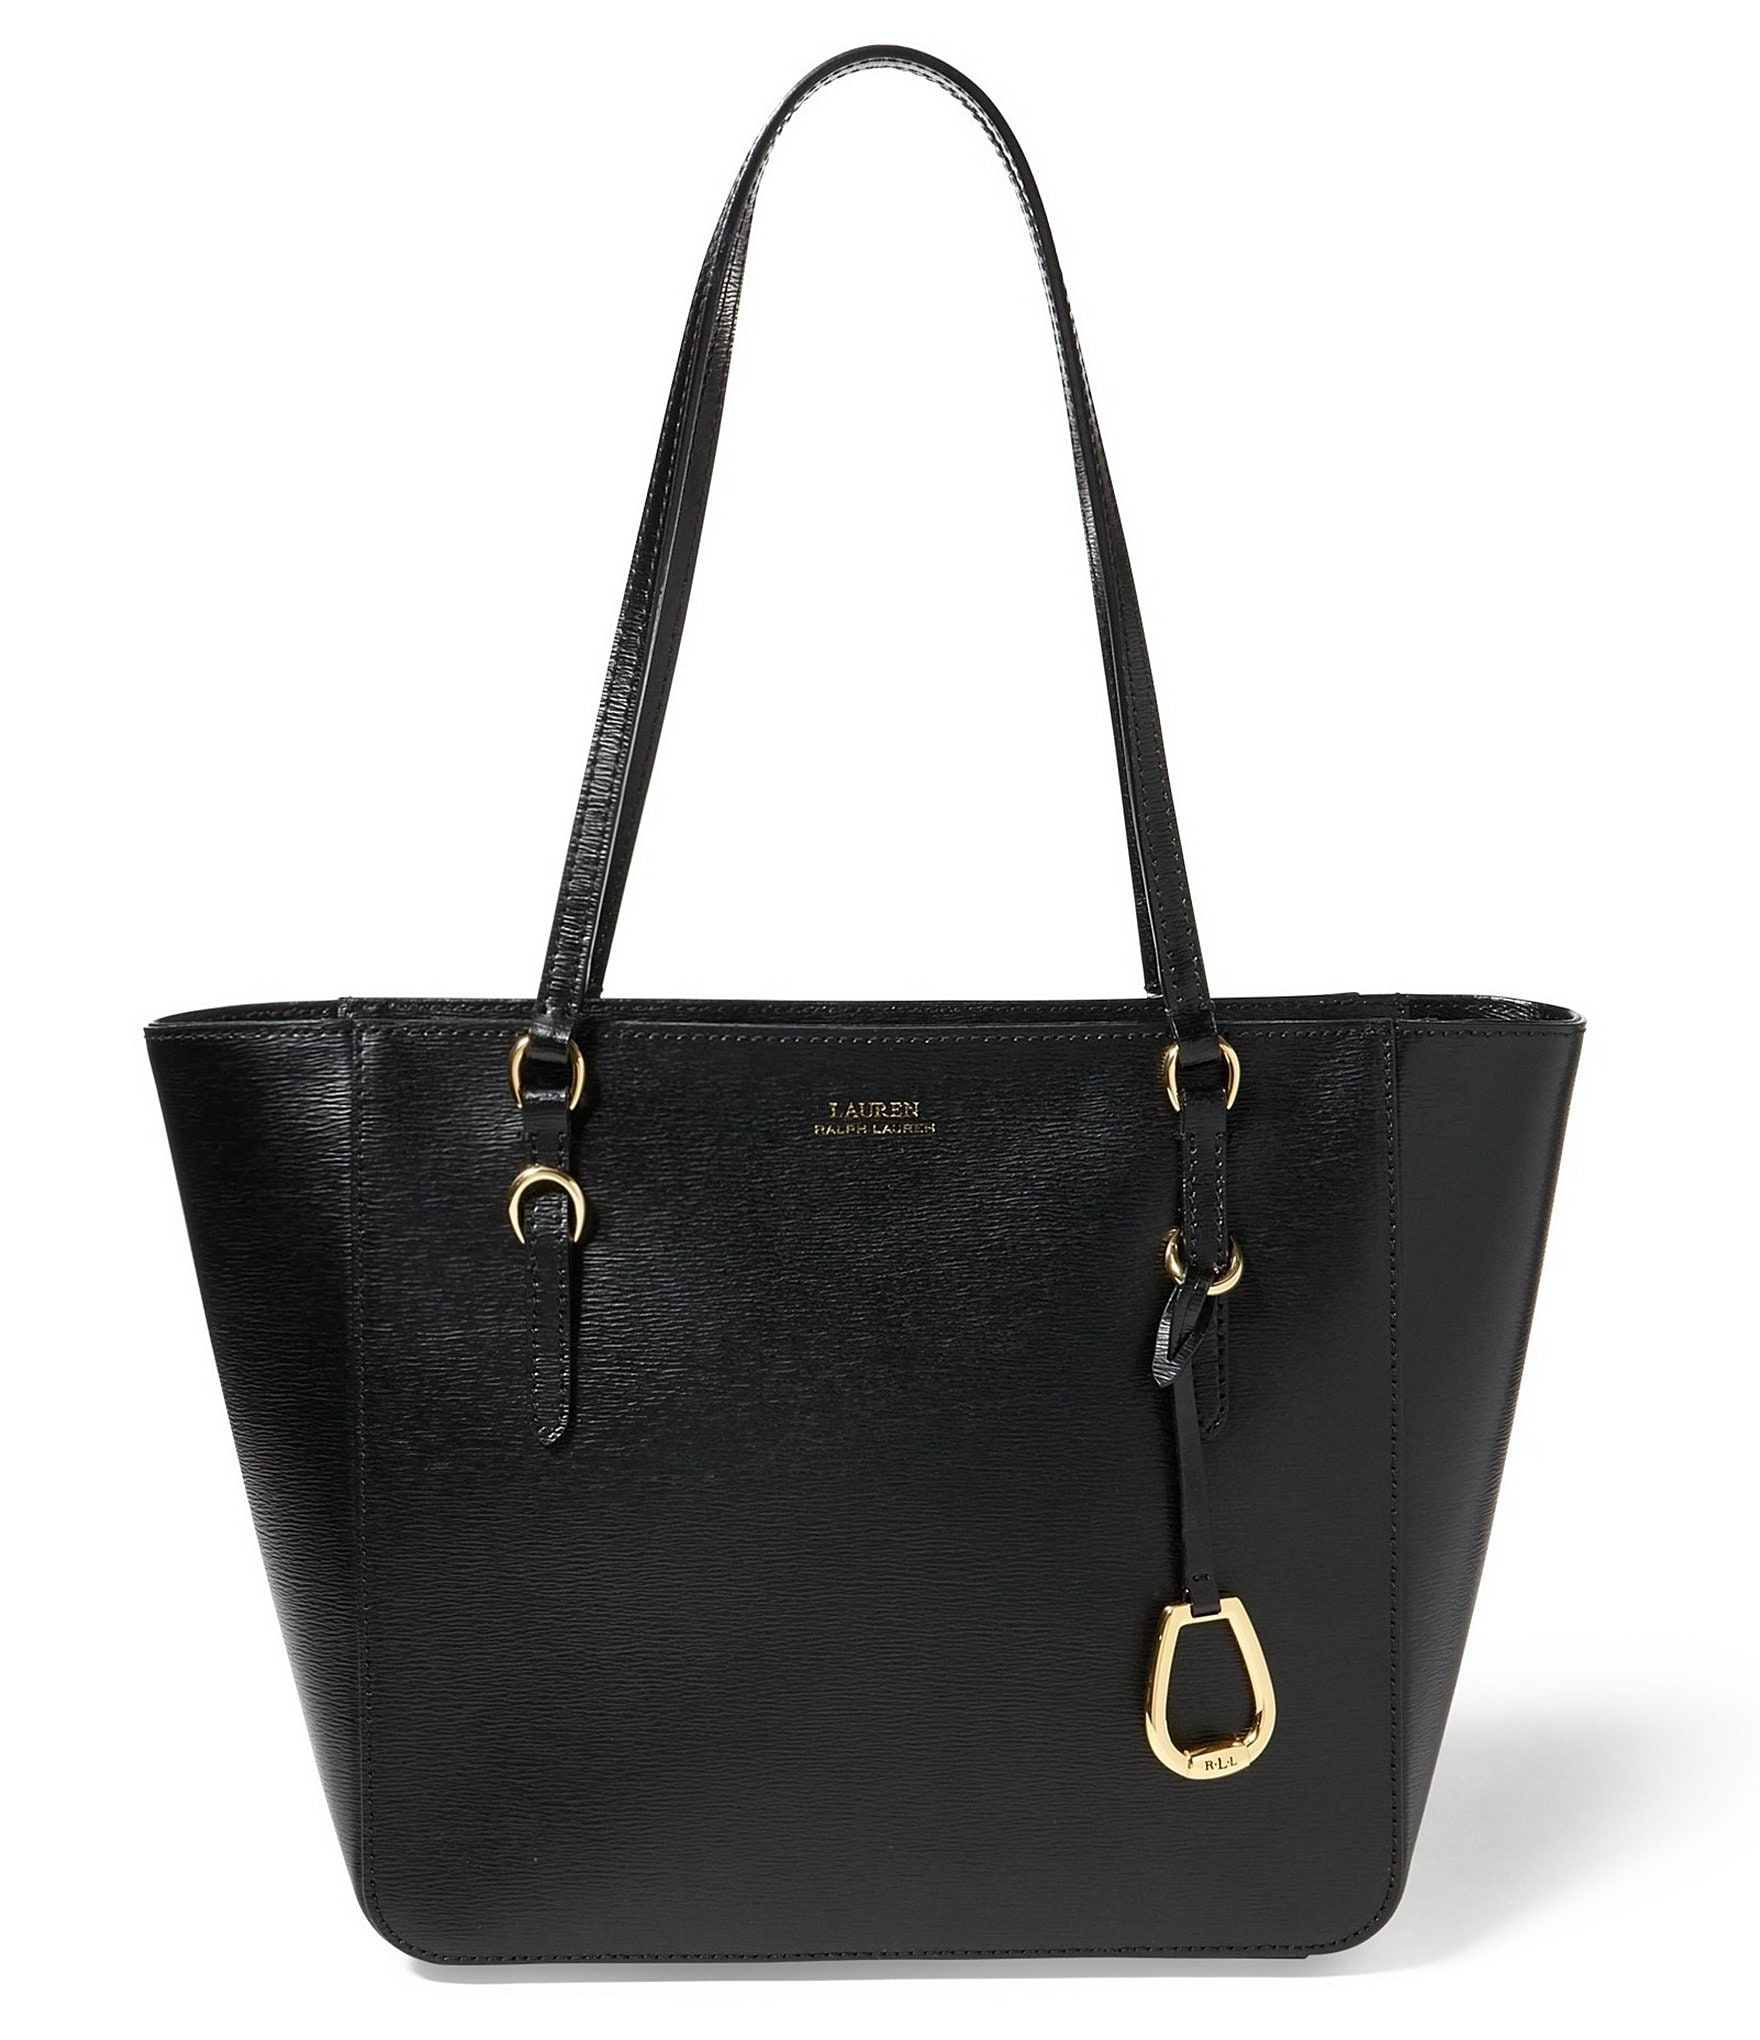 Lauren Ralph Lauren Bennington Leather Shopper Bag Dillards